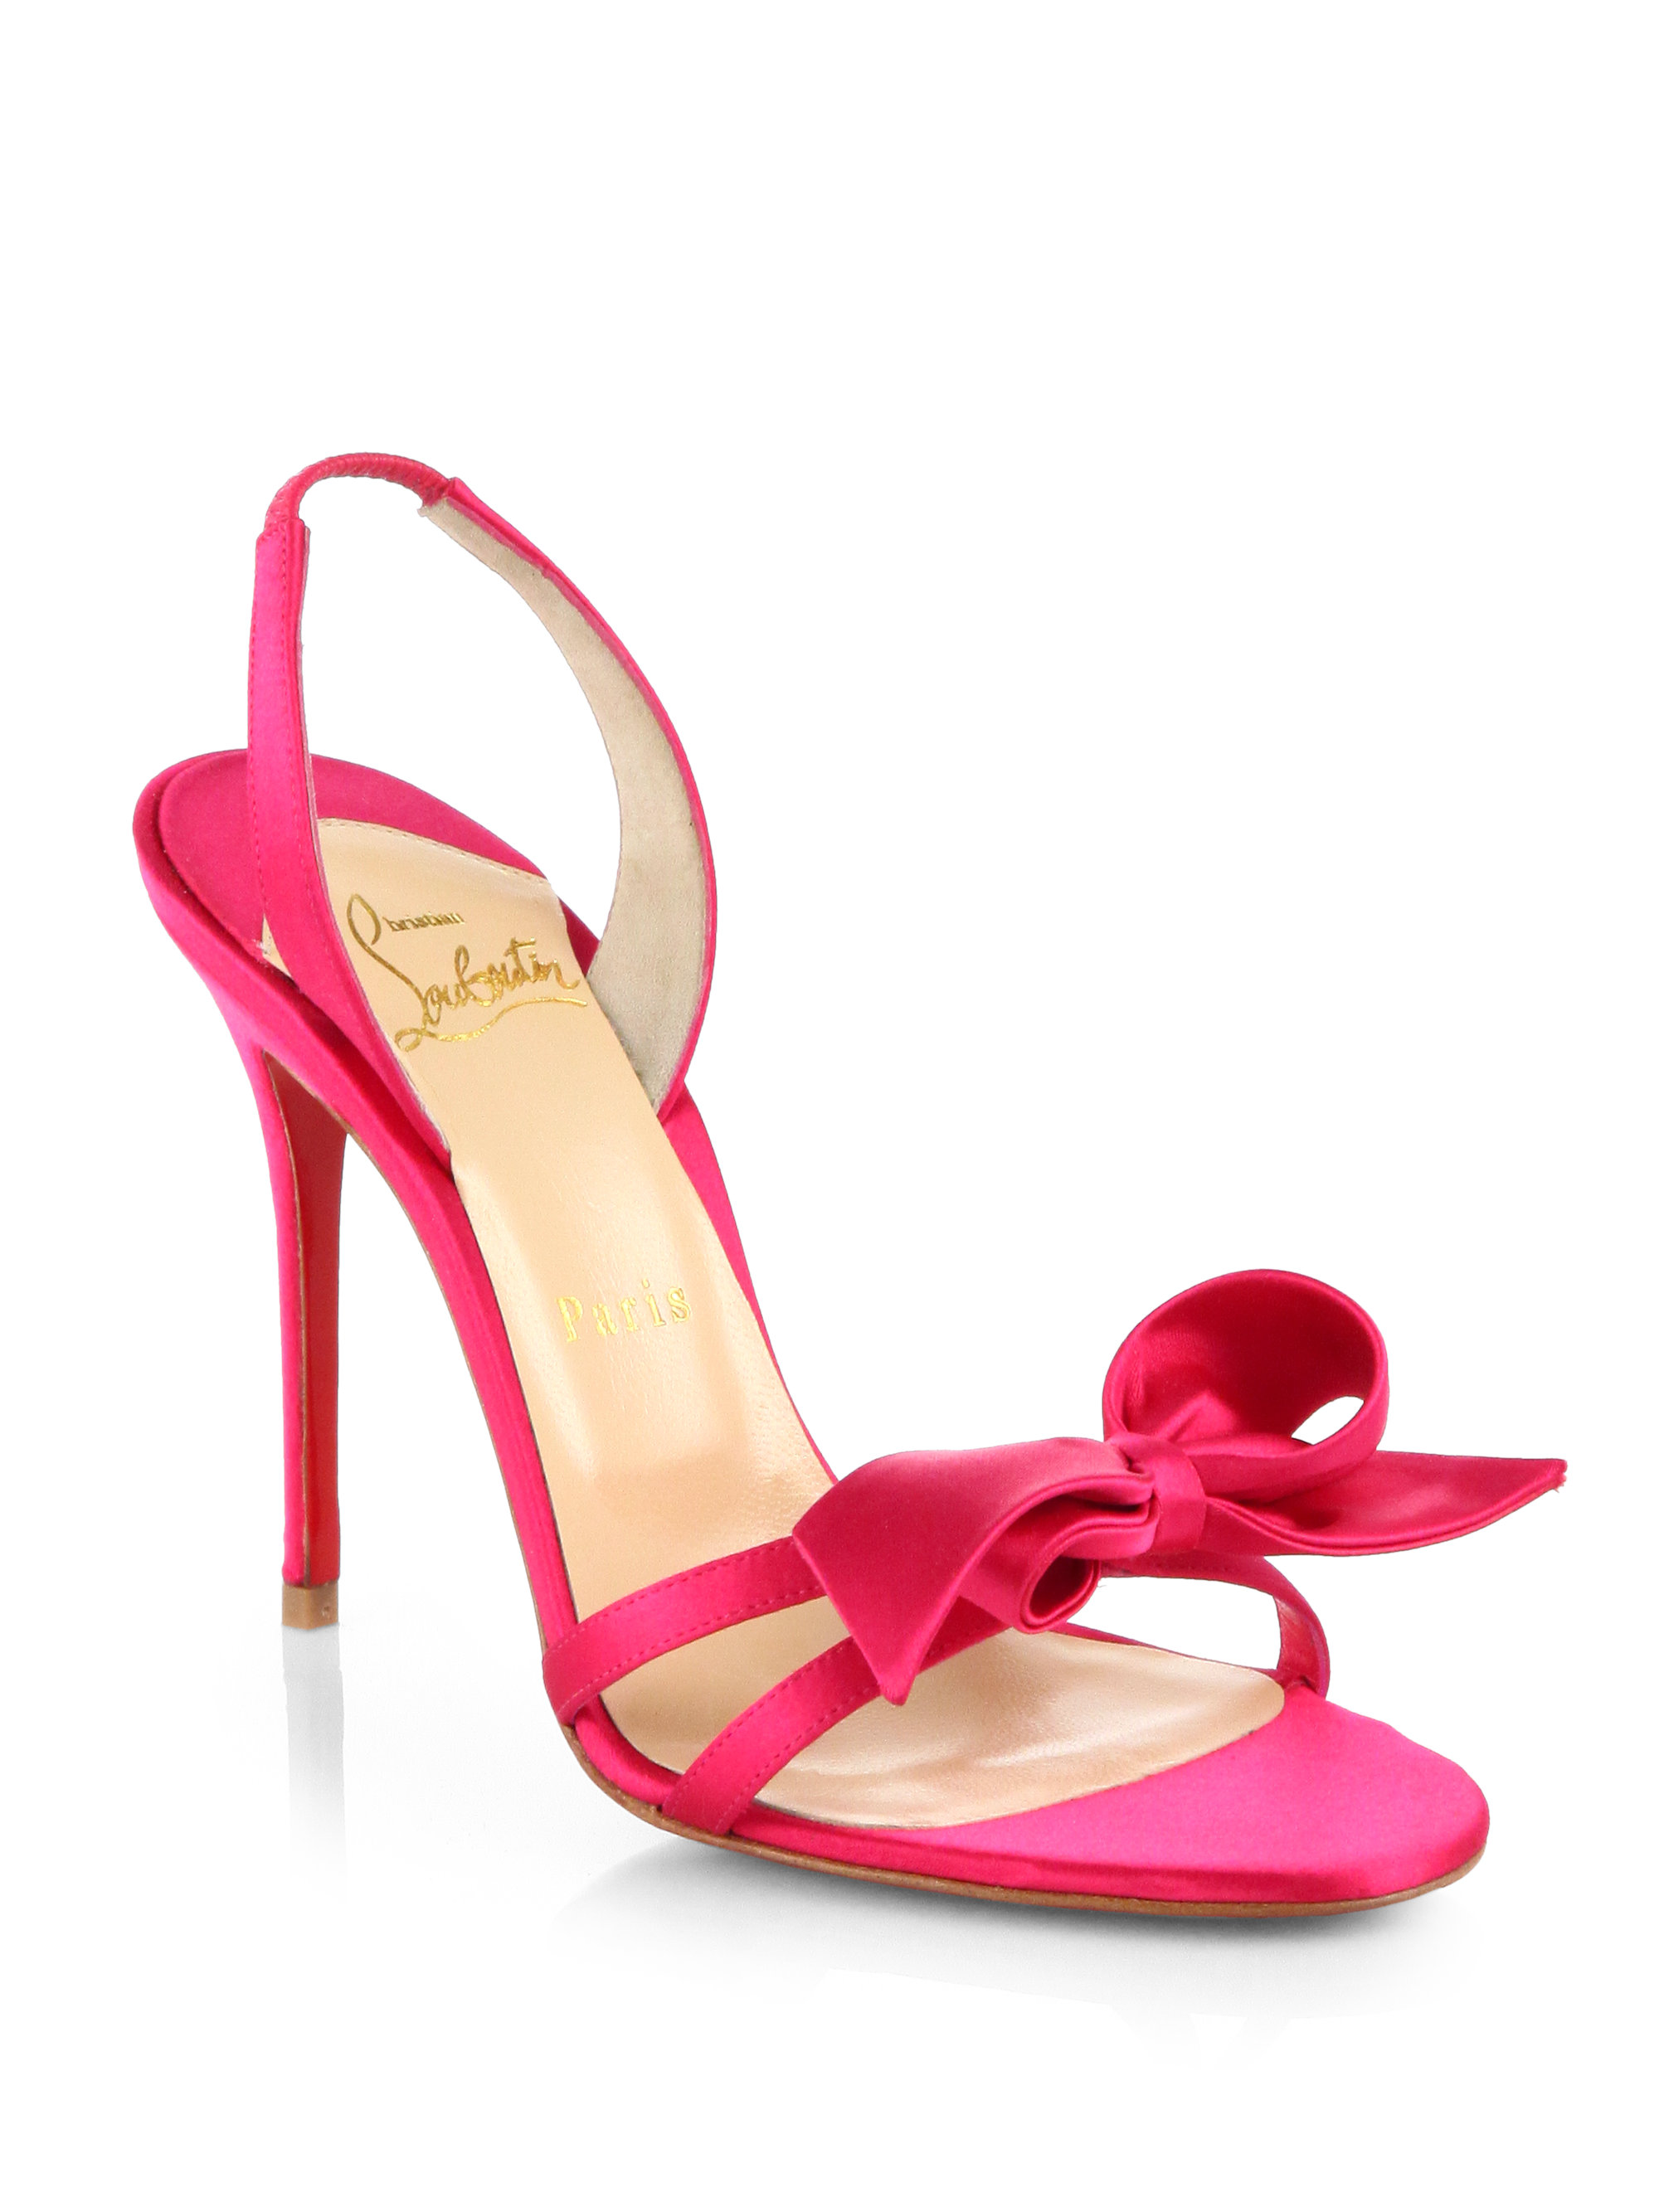 c07eae495e38 ... low cost lyst christian louboutin grusanda satin bow sandals in pink  caa00 f8803